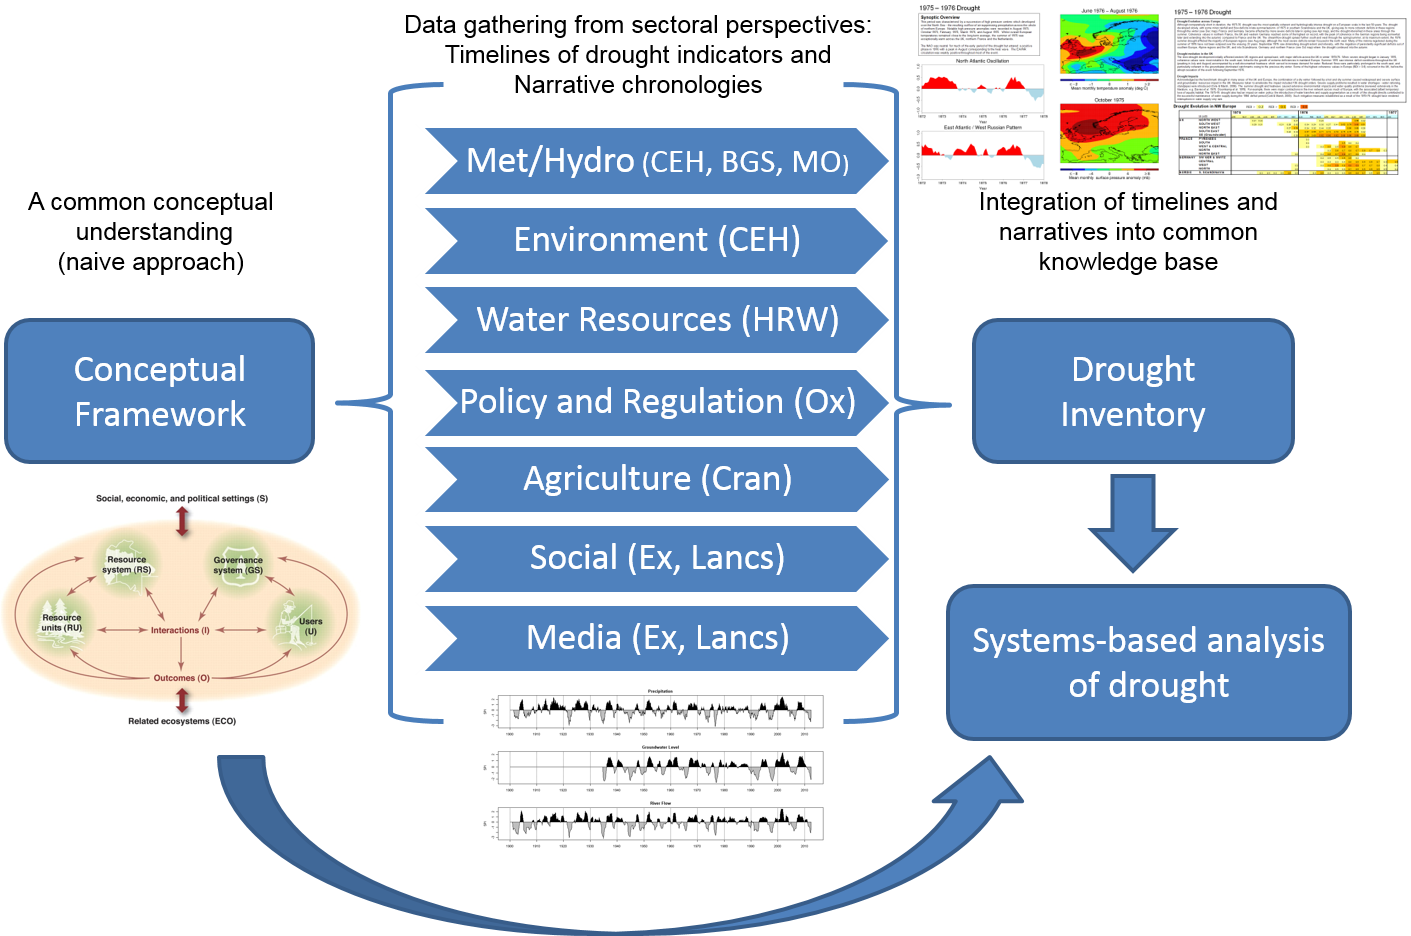 Historic Droughts Project Overview Diagram